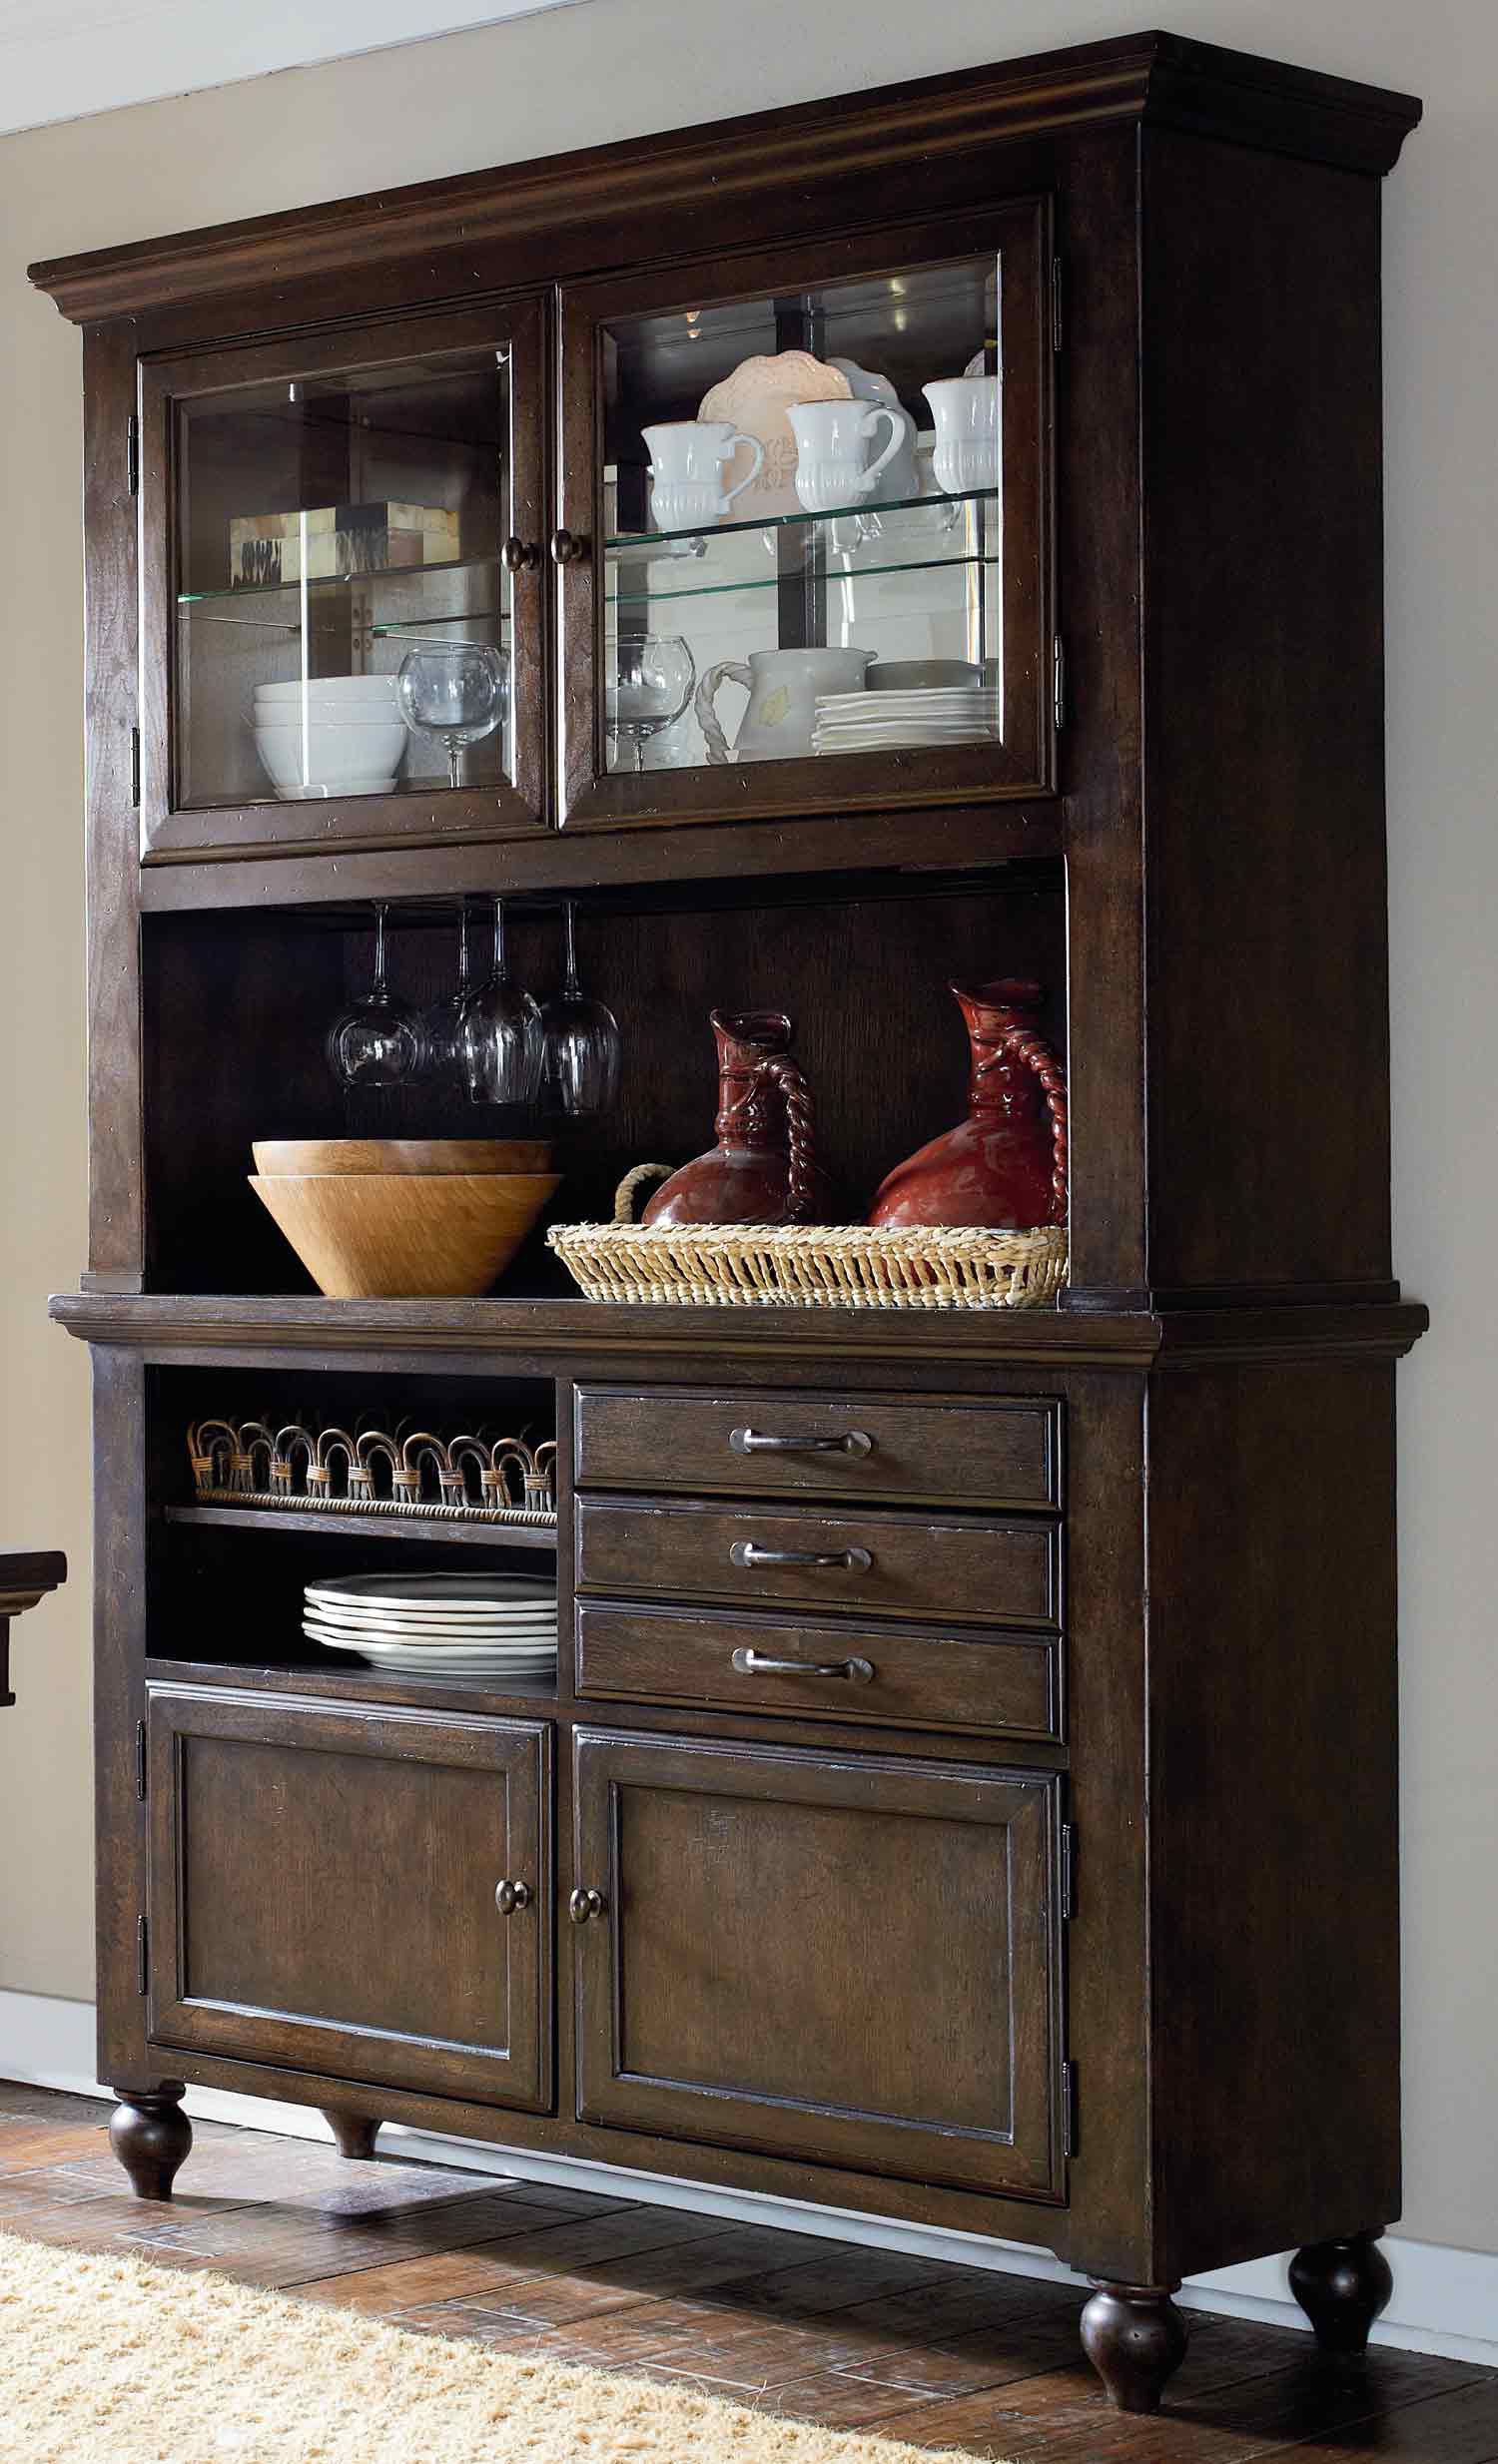 Legacy Classic Thatcher China Buffet/Hutch - Amber